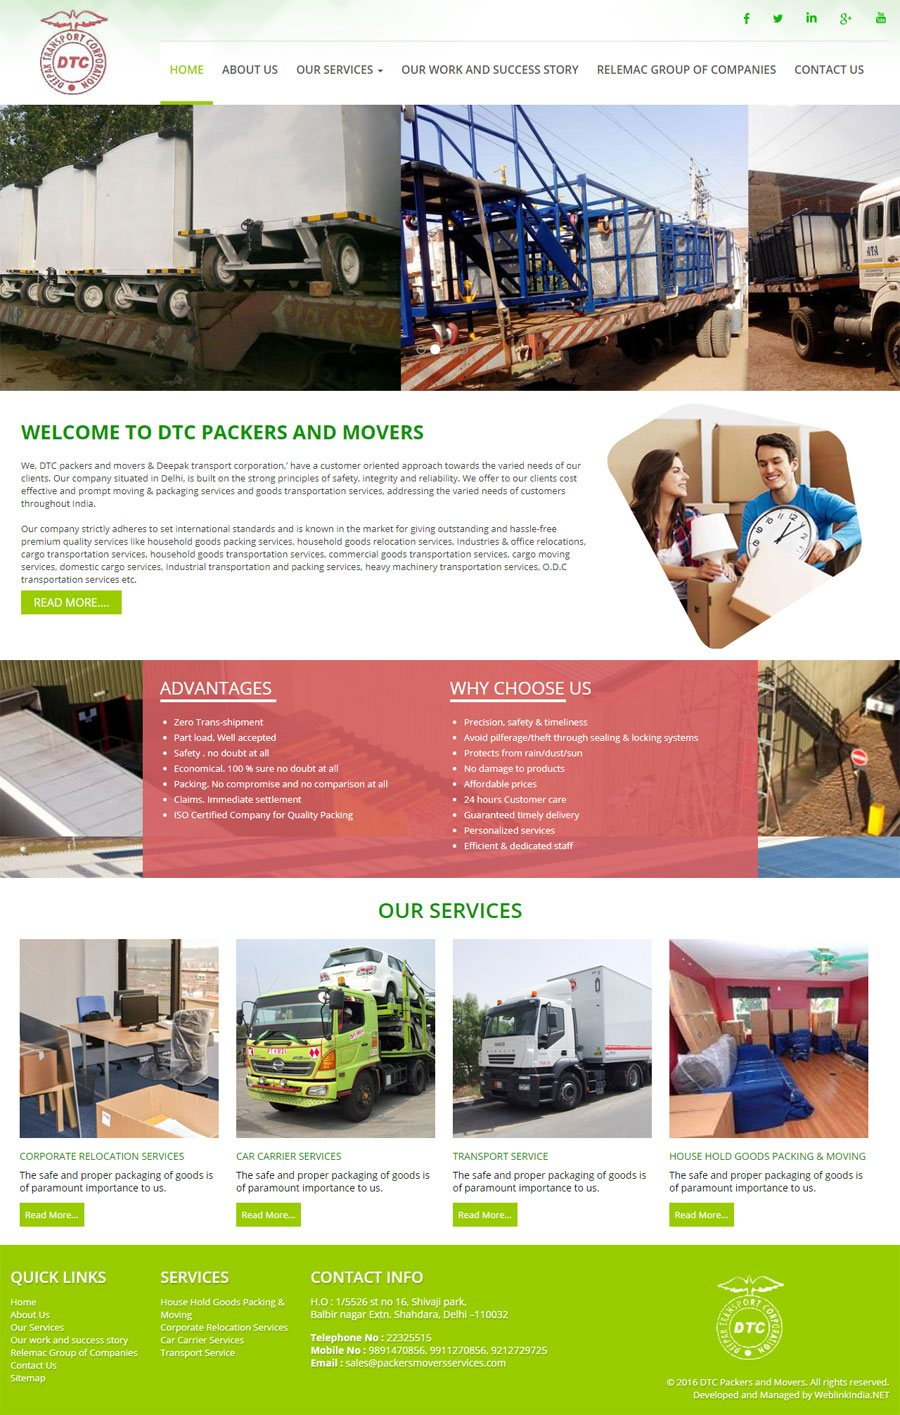 DTC PACKERS AND MOVERS - Web Design Portfolio